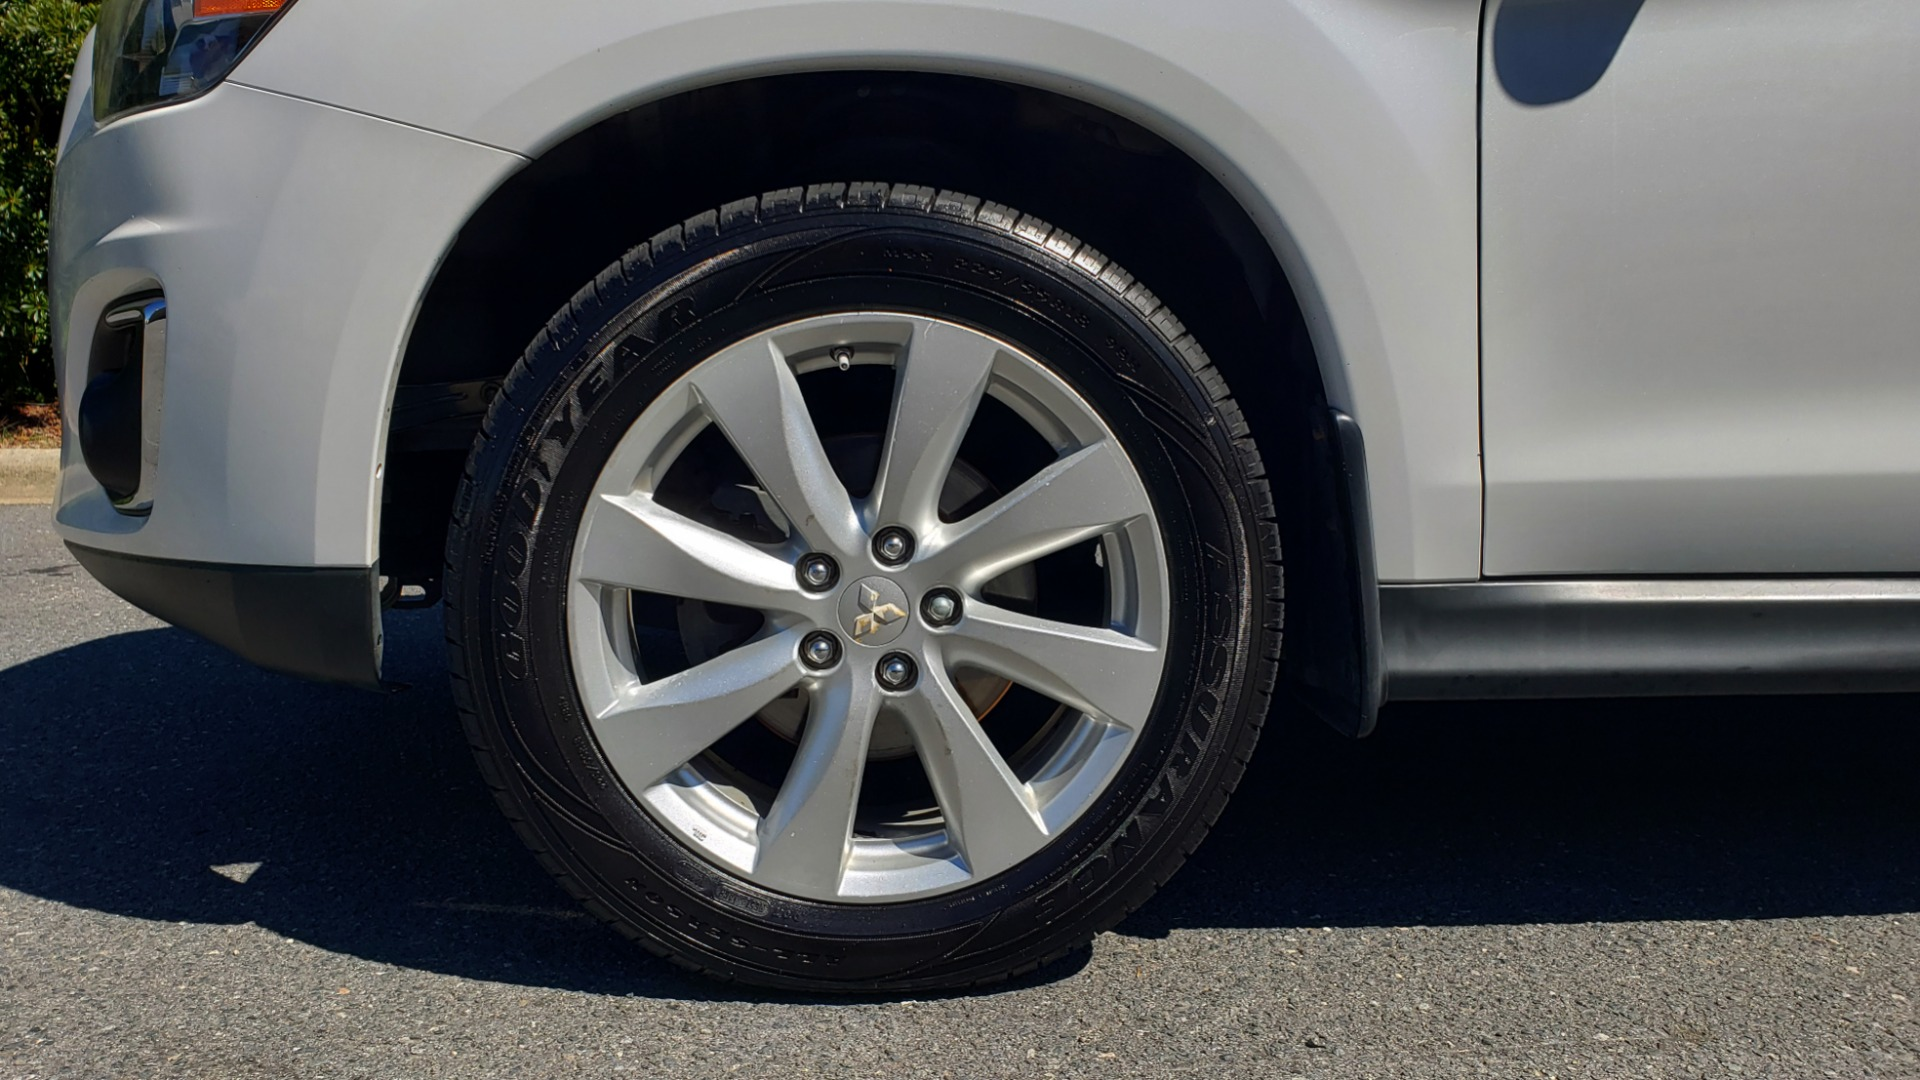 Used 2013 Mitsubishi OUTLANDER SPORT SE / 2WD / 4-DR SUV / CVT TRANS / PREMIUM SOUND / REARVIEW for sale $8,695 at Formula Imports in Charlotte NC 28227 72